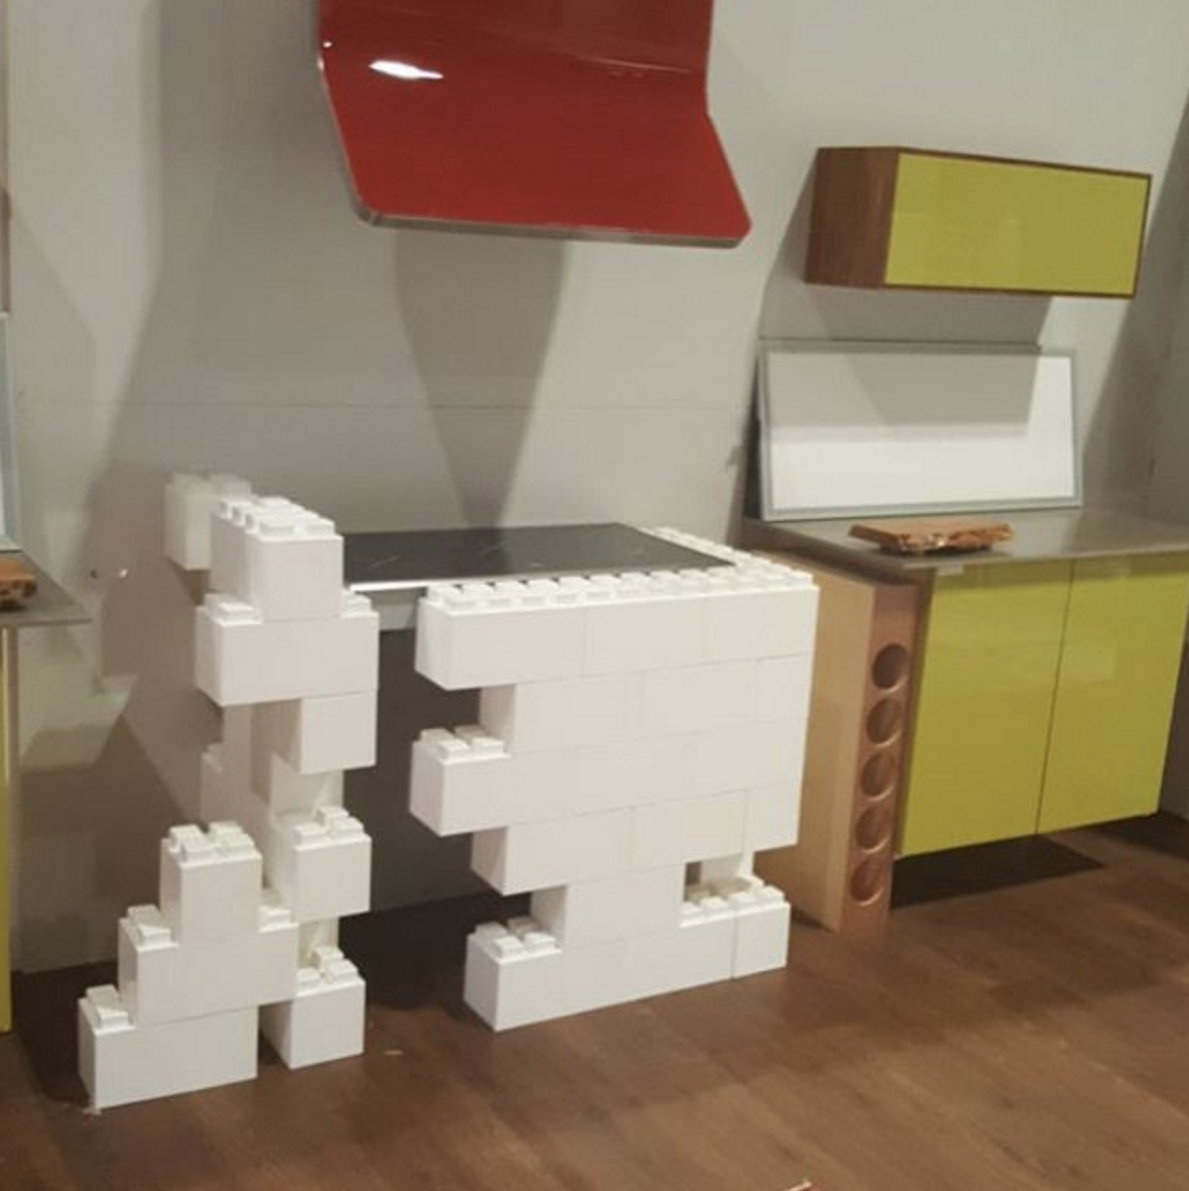 Pin On A Modular Kitchen: #building #blocks #modular #design #create #everblock #everblocksystems #DIY